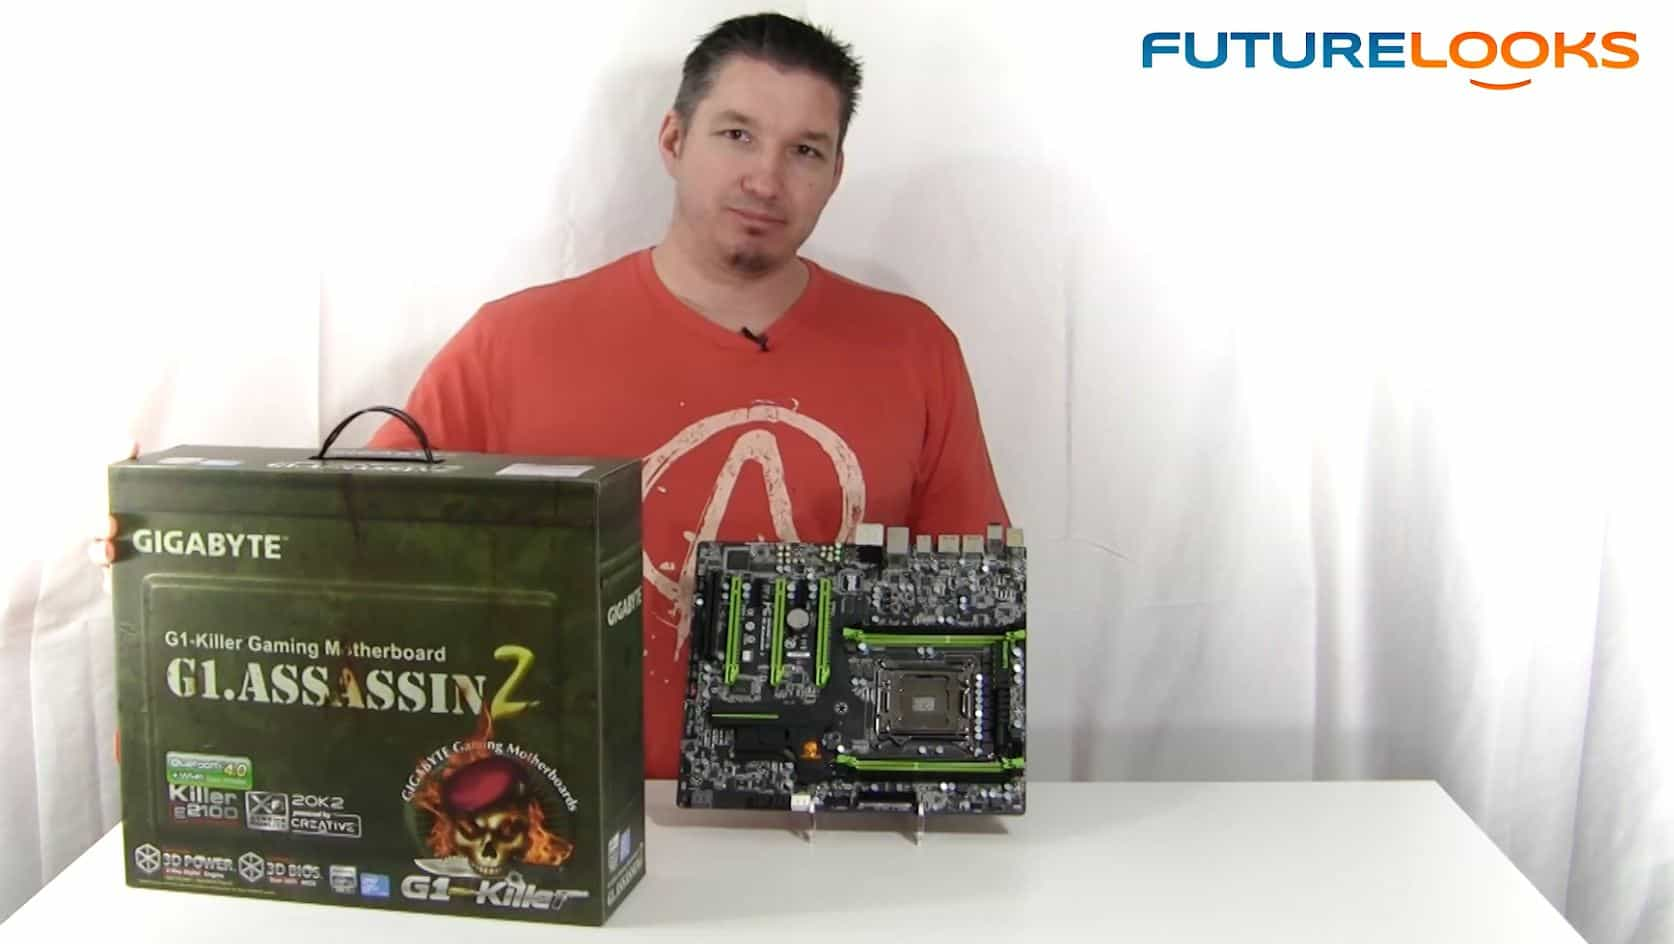 Futurelooks Unboxes the GIGABYTE G1.Killer Series Assassin 2 X79 Gaming Motherboard (Video)